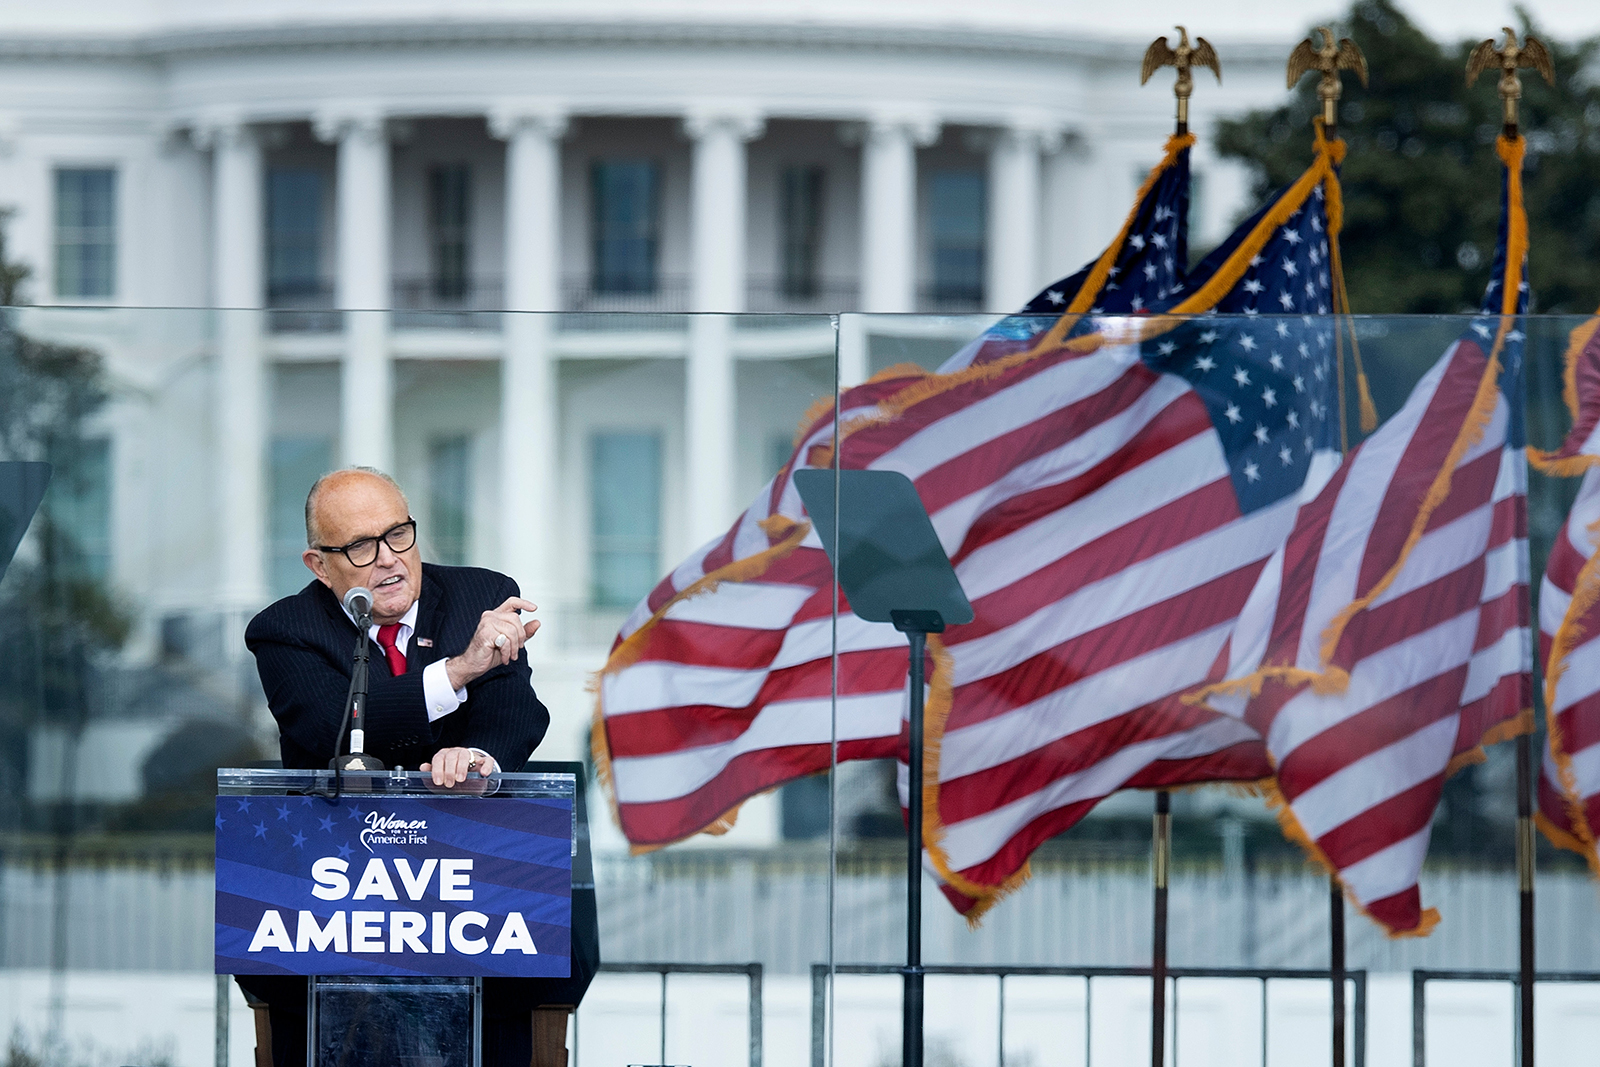 US President Donald Trump's personal lawyer Rudy Giuliani speaks to supporters from The Ellipse near the White House in Washington, DC, on January 6.